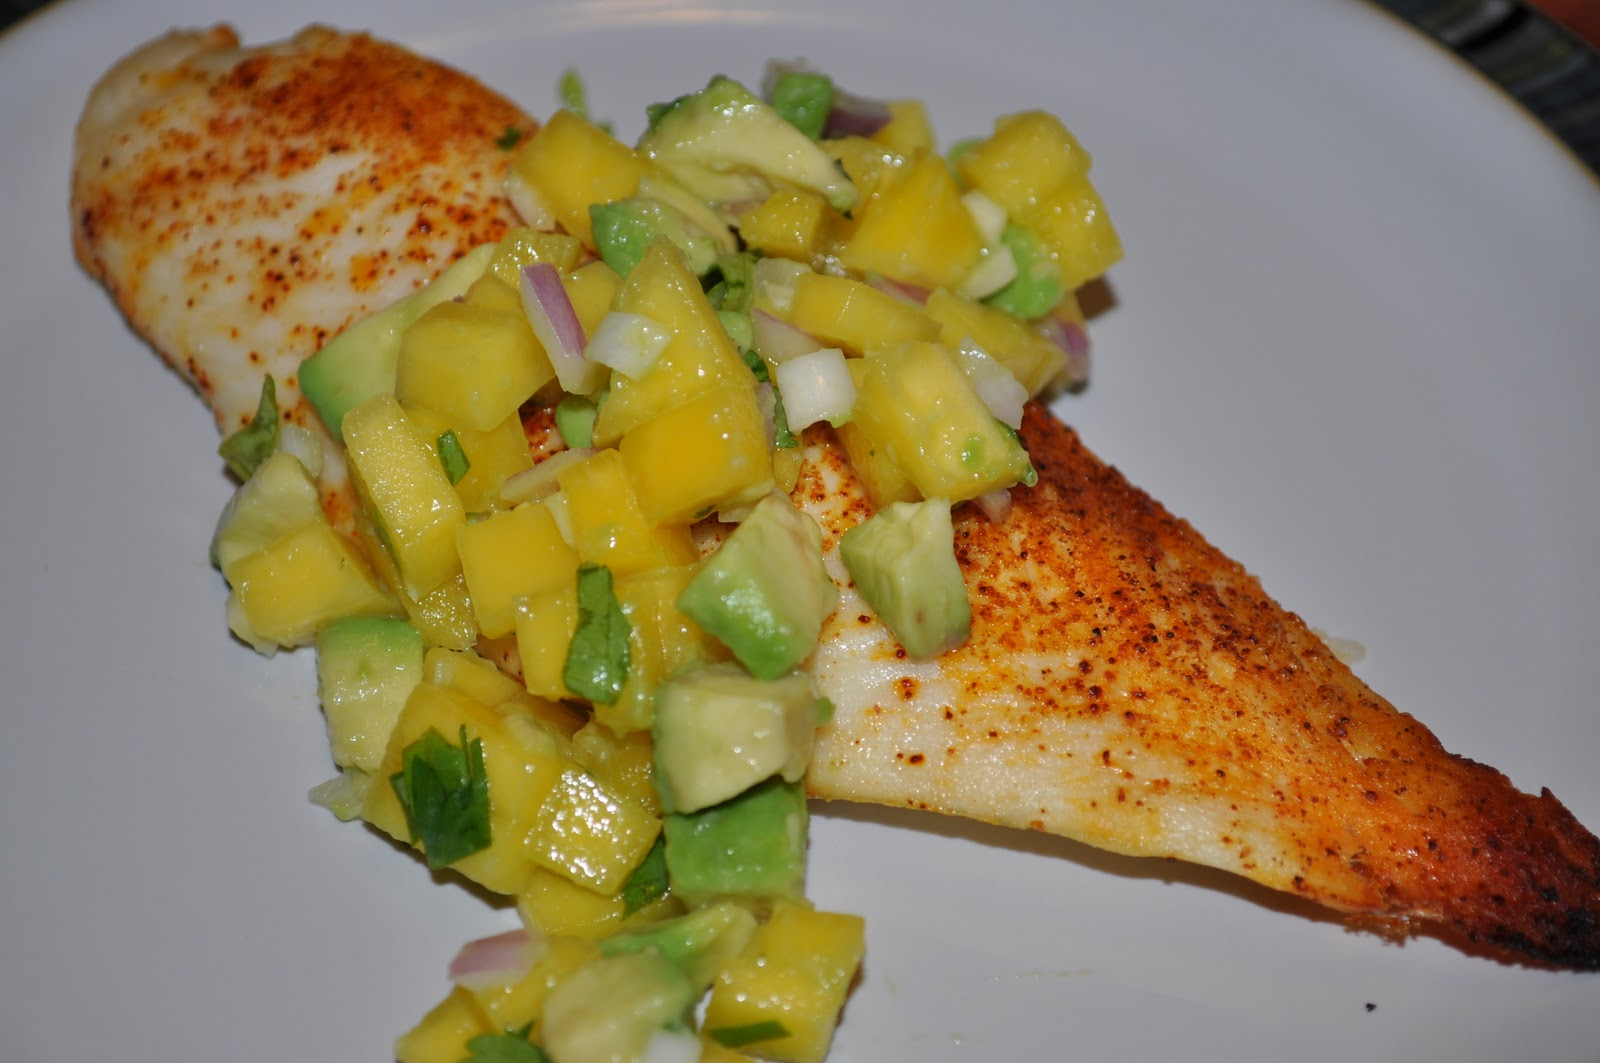 This Recycled Life: Baked Tilapia with Mango-Avocado Salsa